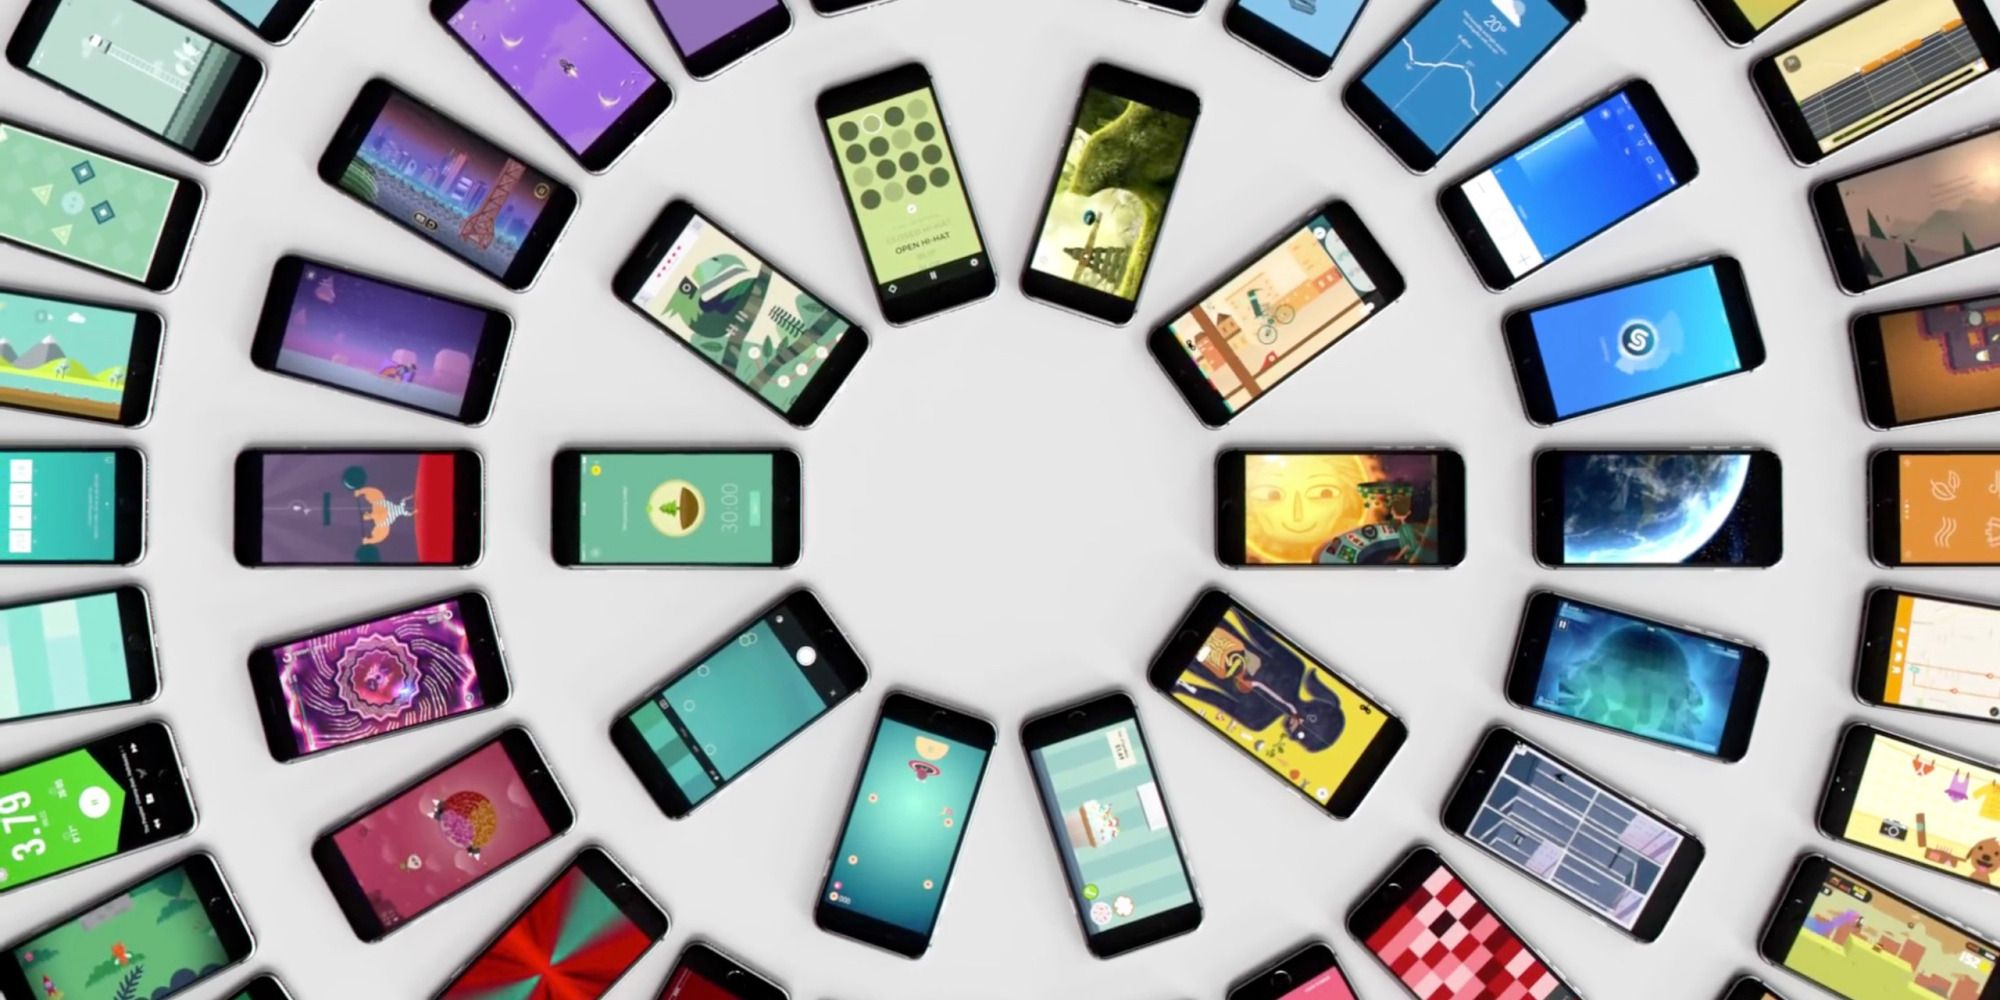 December is always one of Apple's biggest months of the year thanks to the influx of new devices people receive as gifts during the holiday season. The company often reports its highest device sale...